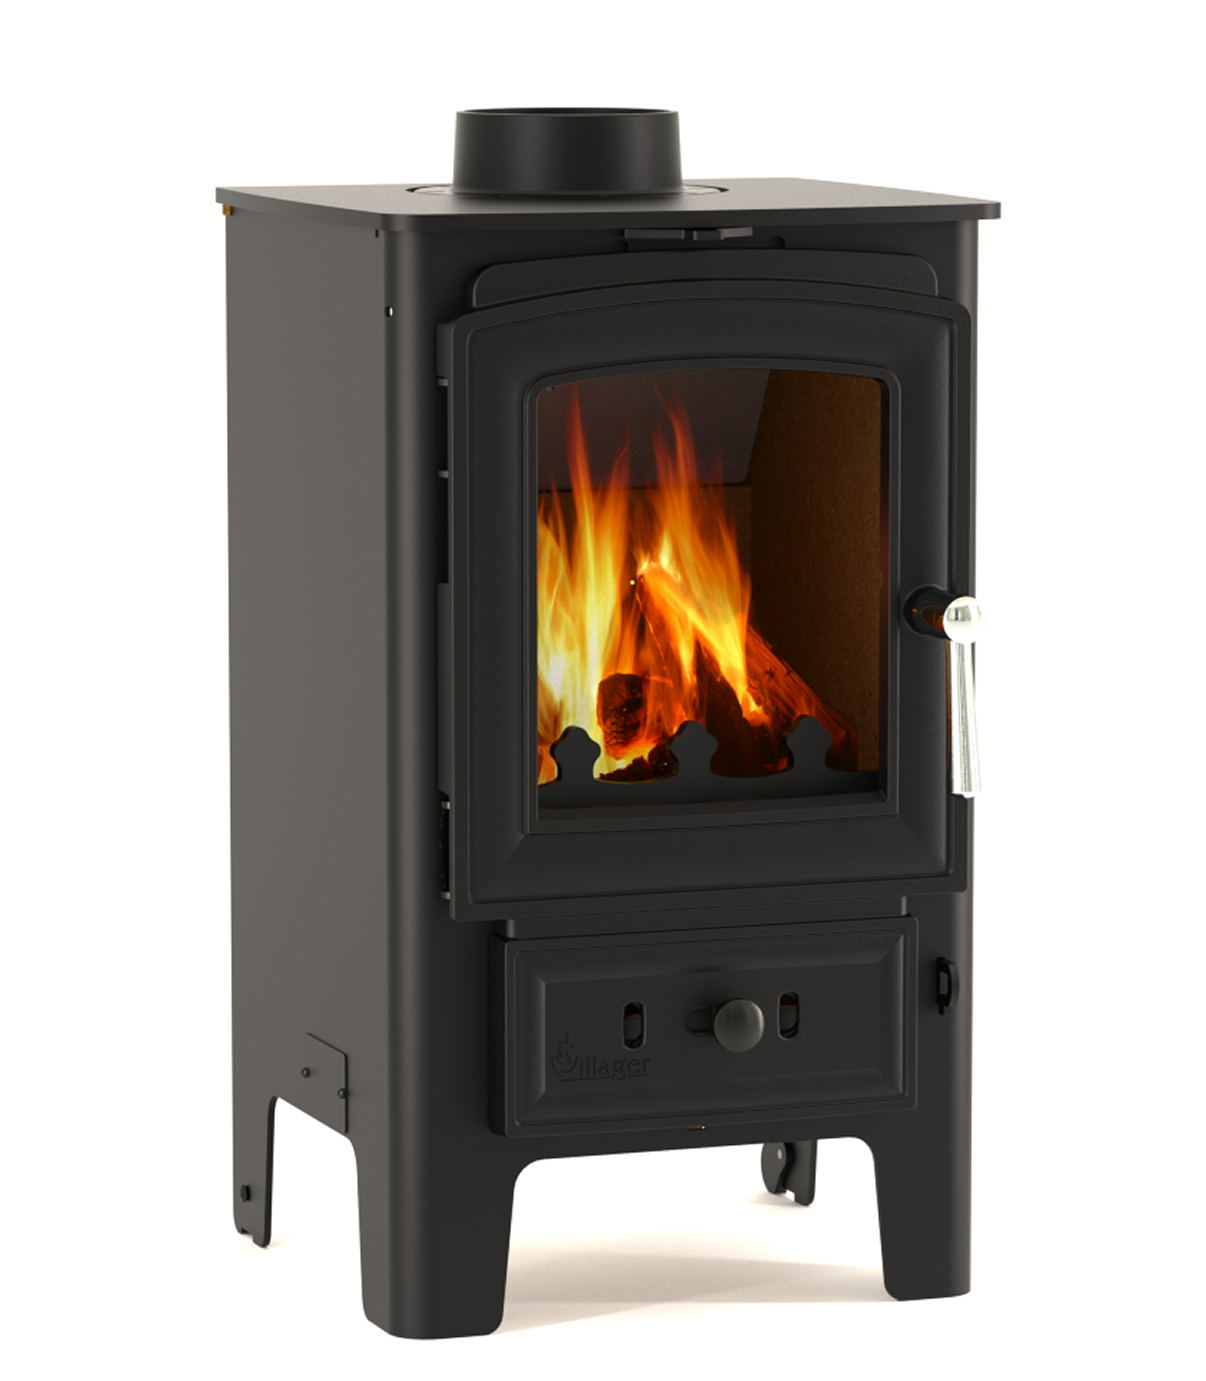 Villager Puffin Multi Fuel Stove Chase Heating Stoves